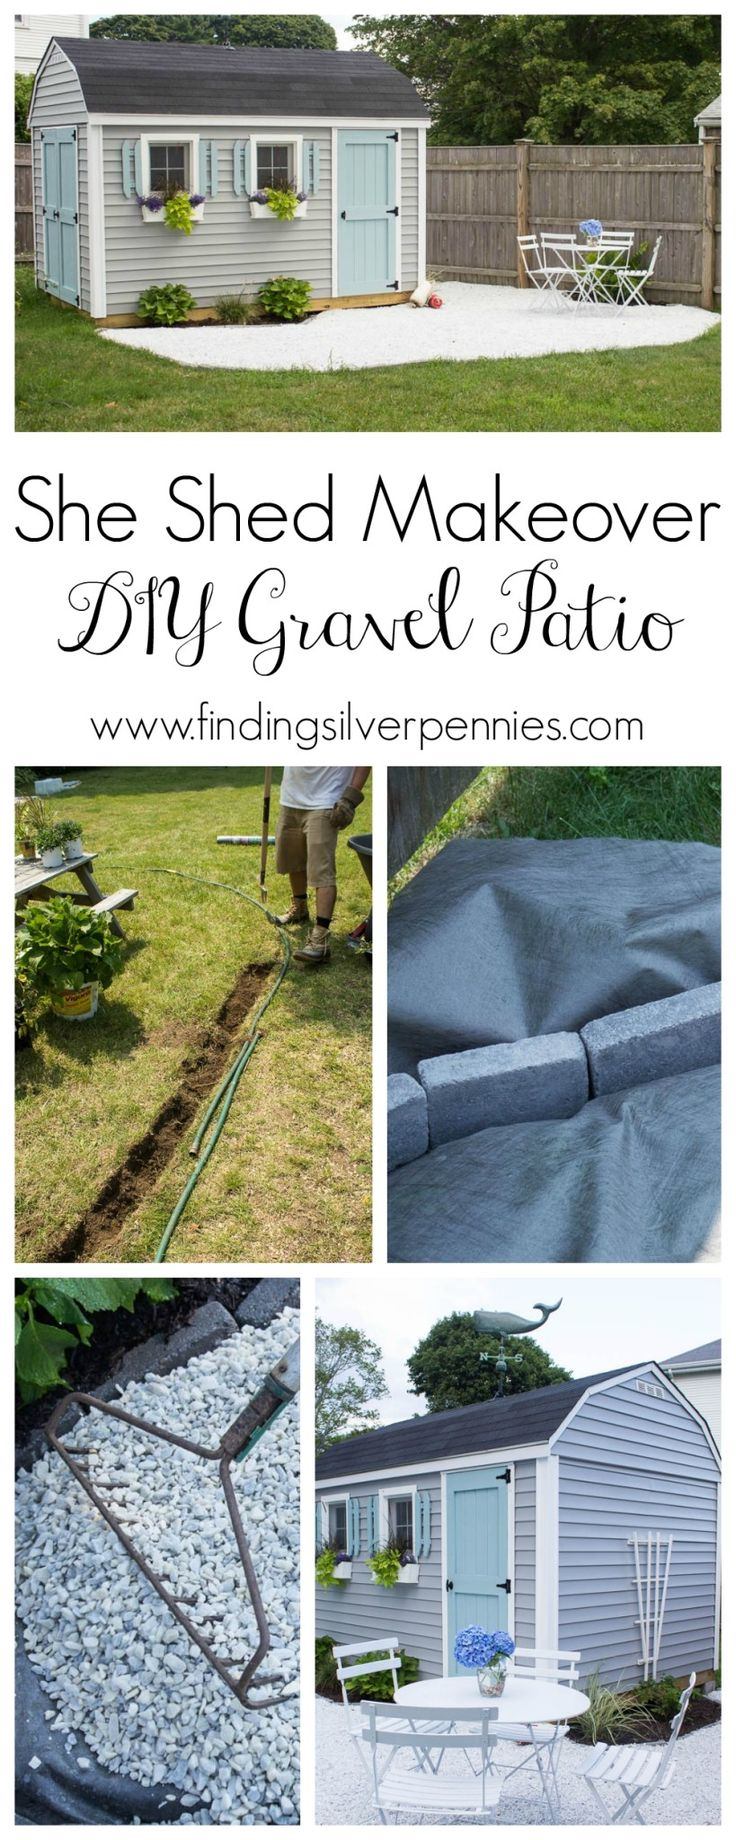 The gravel patio adds a lovely sitting area outside this Nantucket-inspired She Shed. Danielle Driscoll of Finding Silver Pennies shows how she created the the patio using white marble chips... and how she added other cute touches to her She Shed. || @DDSilverPennies